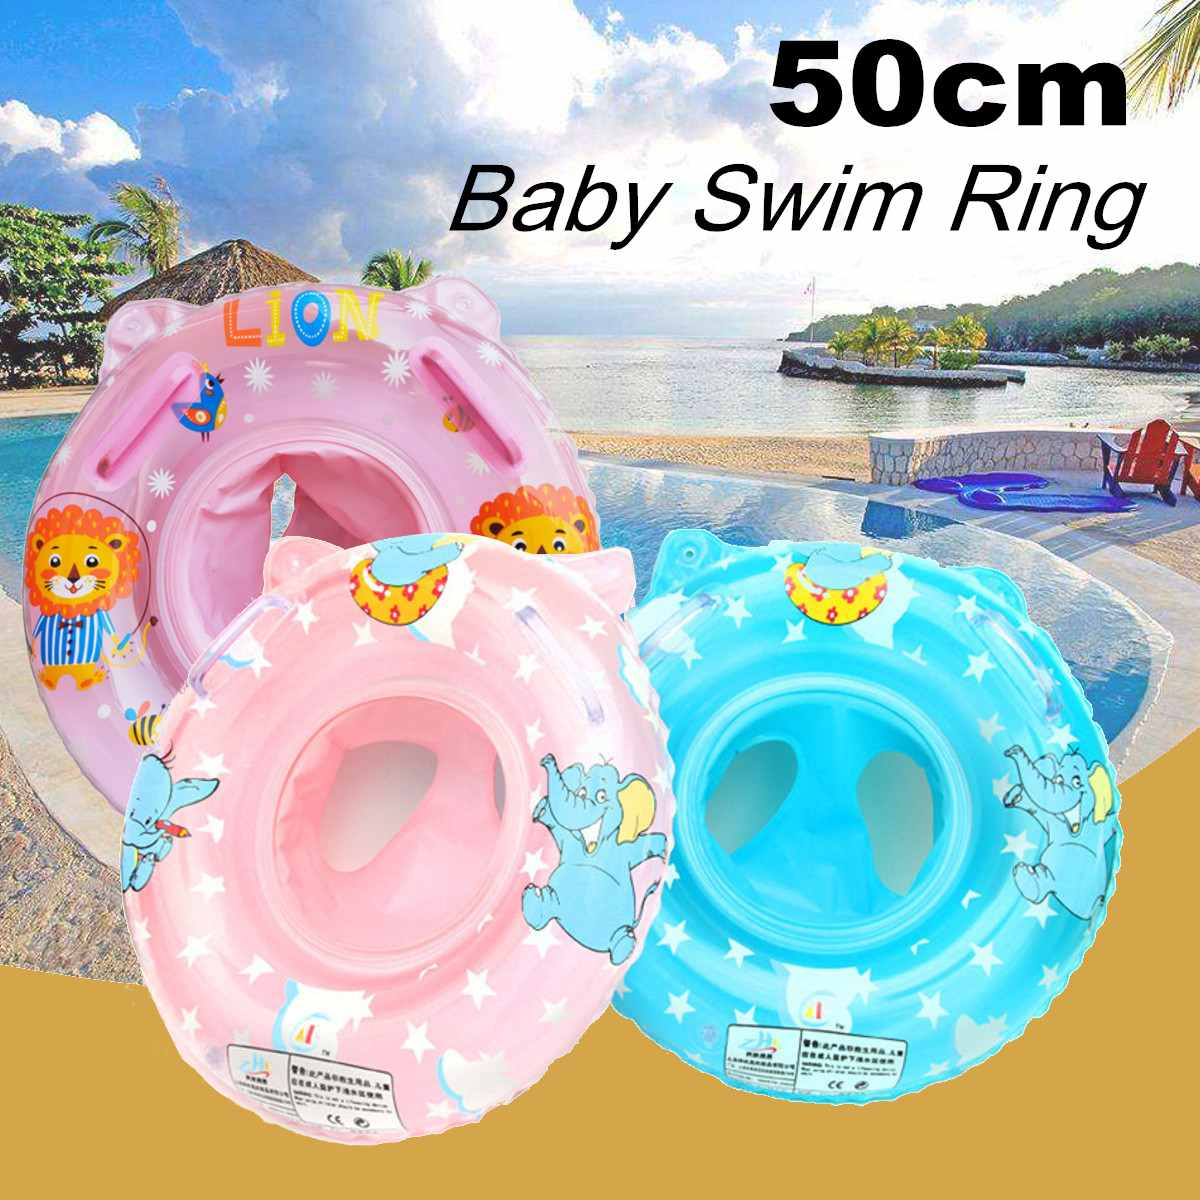 Baby Kids Swim Ring PVC Inflatable Toddler Float Swimming Rings Pool Float Water Seat Water Fun Sports Accessories 6 Colors